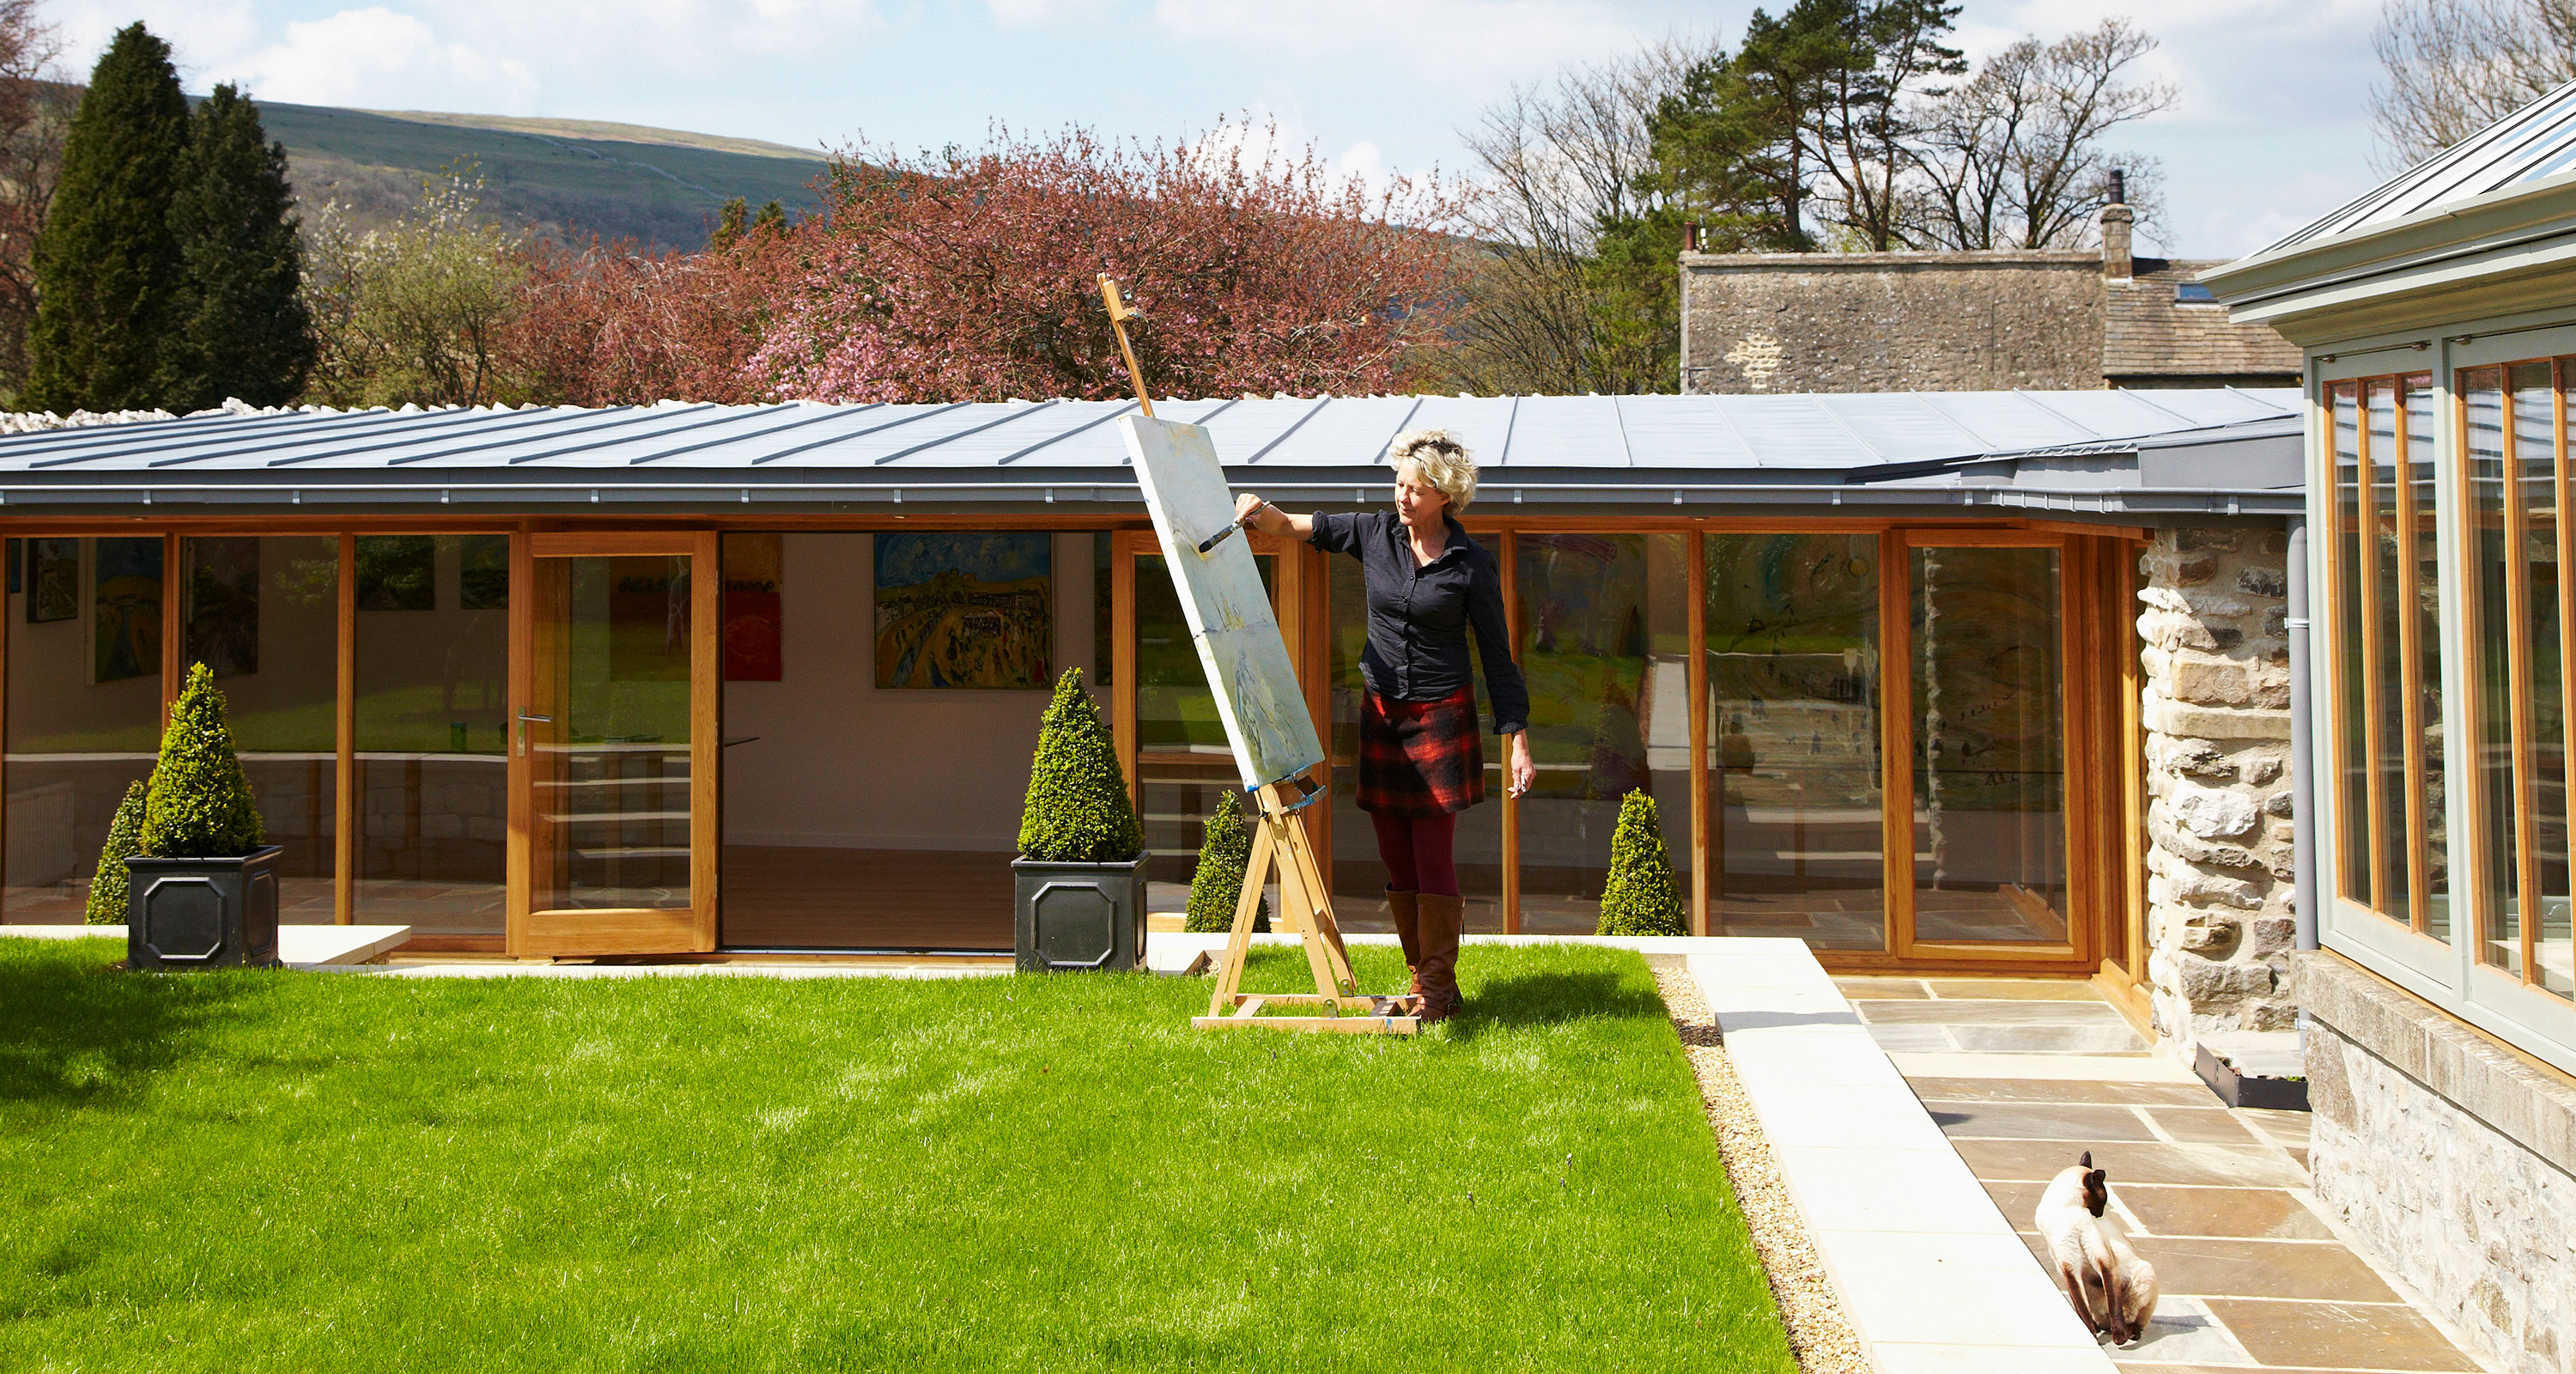 Prospect House - The award winning private artist's studio in the peaceful village of Arncliffe